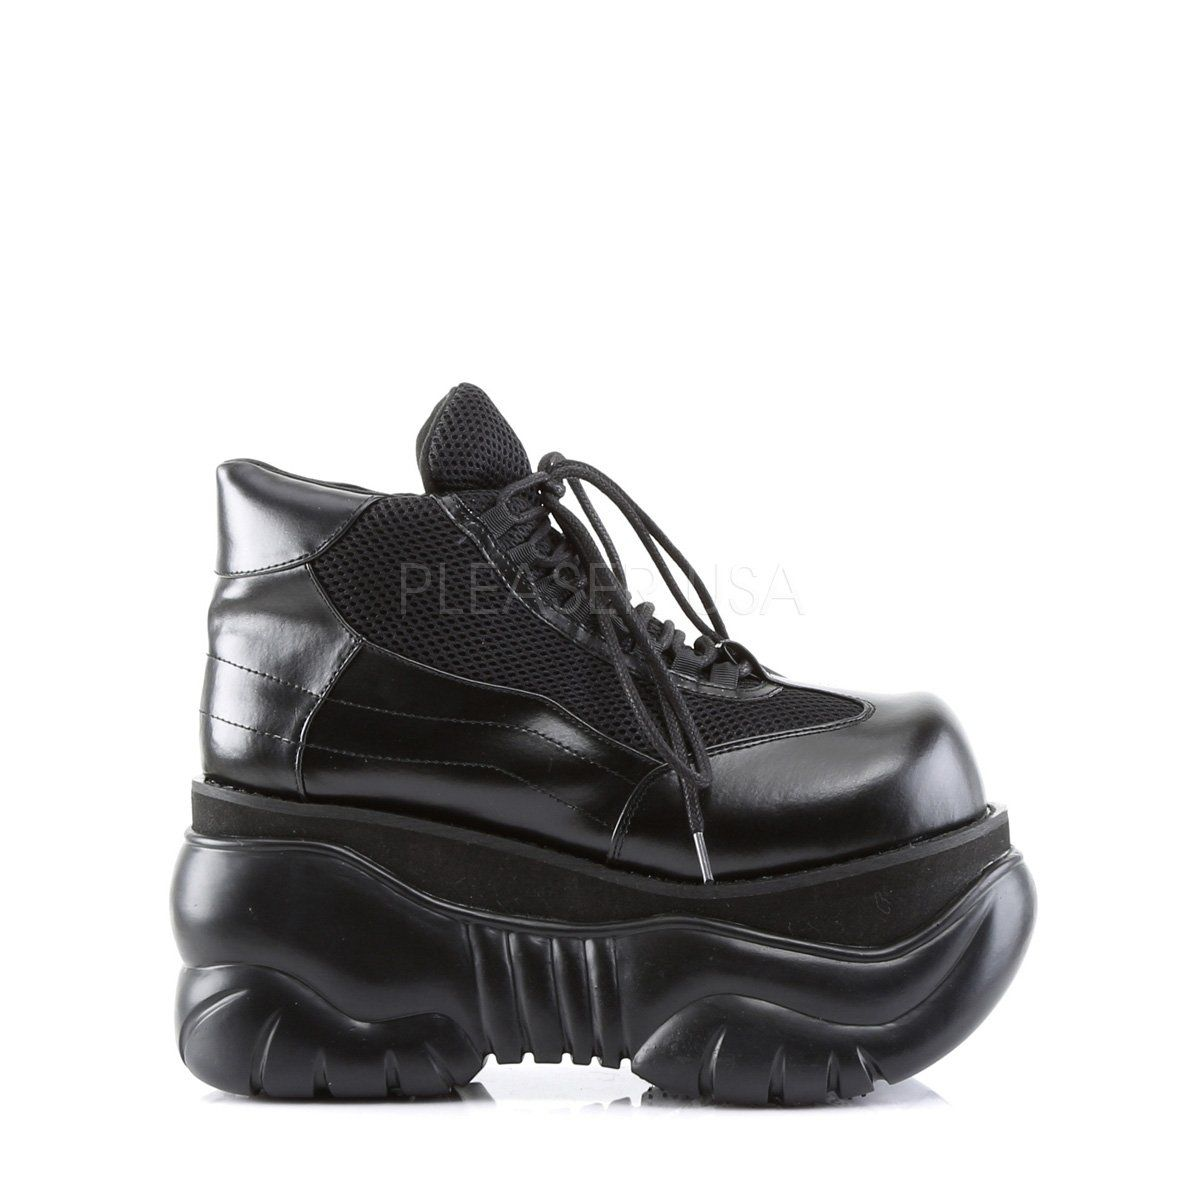 f2325784b77214 4 inch PF Cyber Lace Up Sneaker Shoes 4 inch (10.2cm) Platform Cyber Punk  Lace Up Sneaker Shoes Vegan Style Men s Sizing Size Range  Men s 5-12